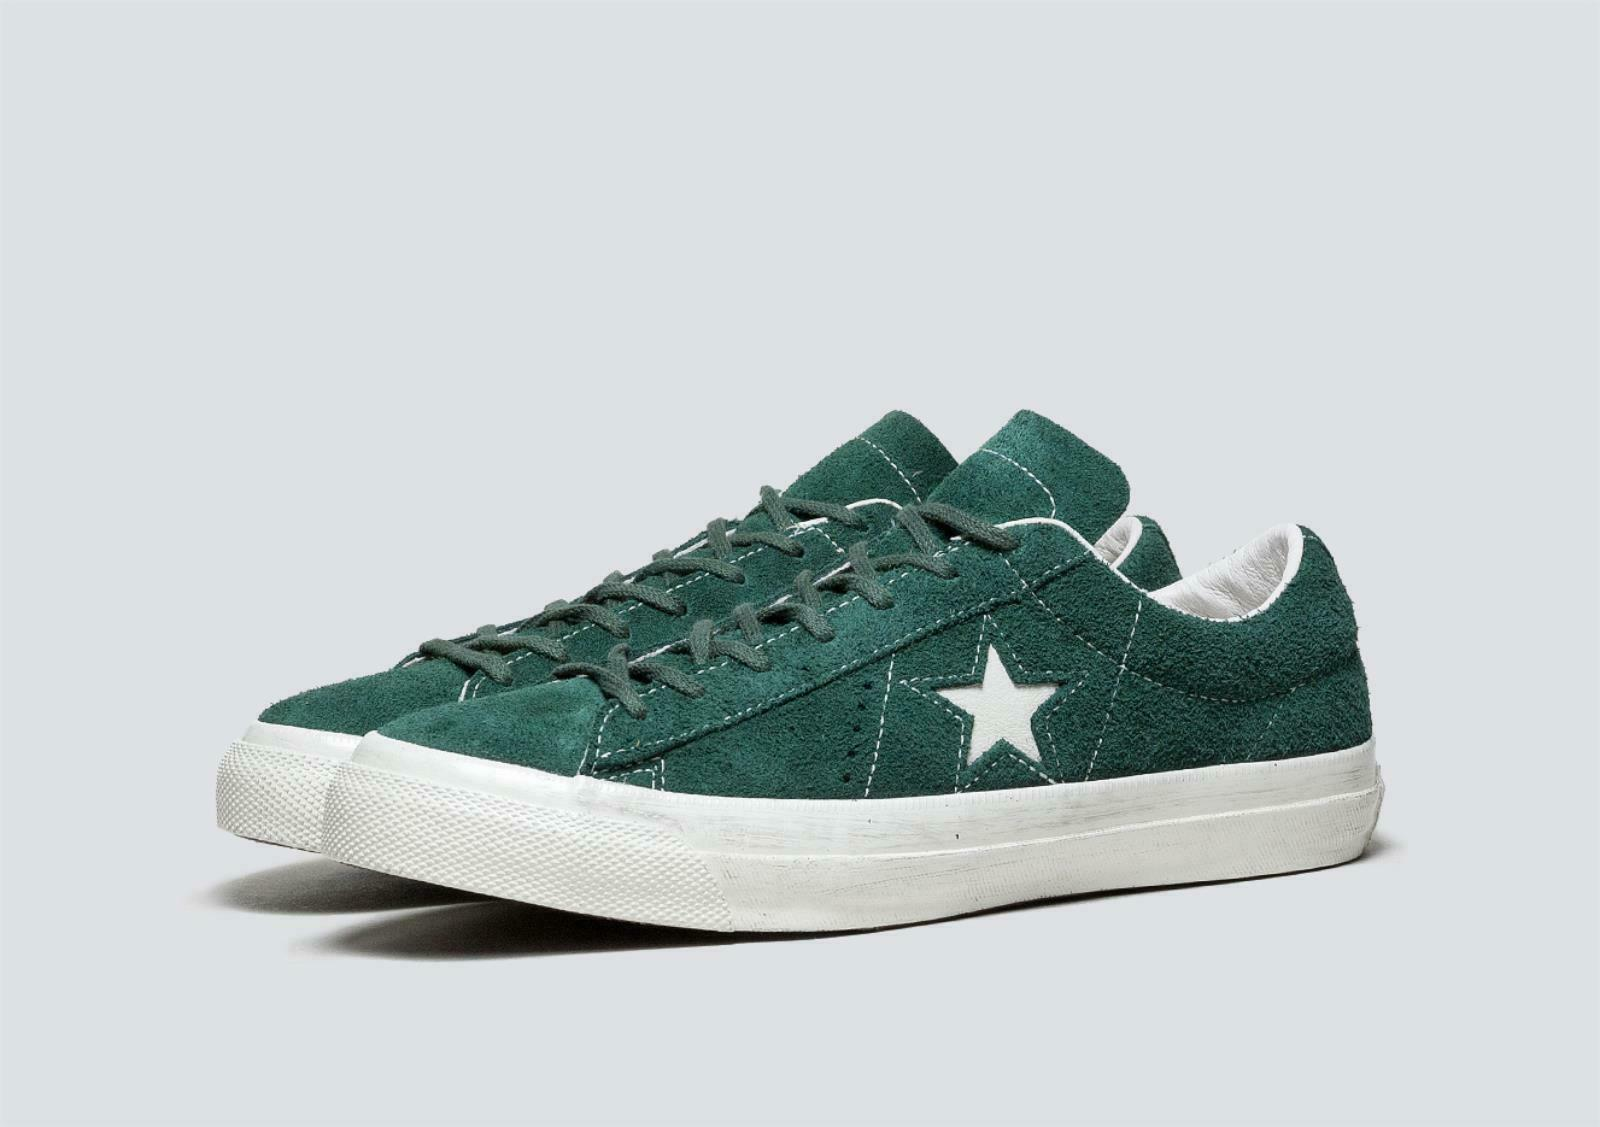 Converse John Varvatos One Star Green Sneakers shoes 9.5 UK US 43 EU 158939C New